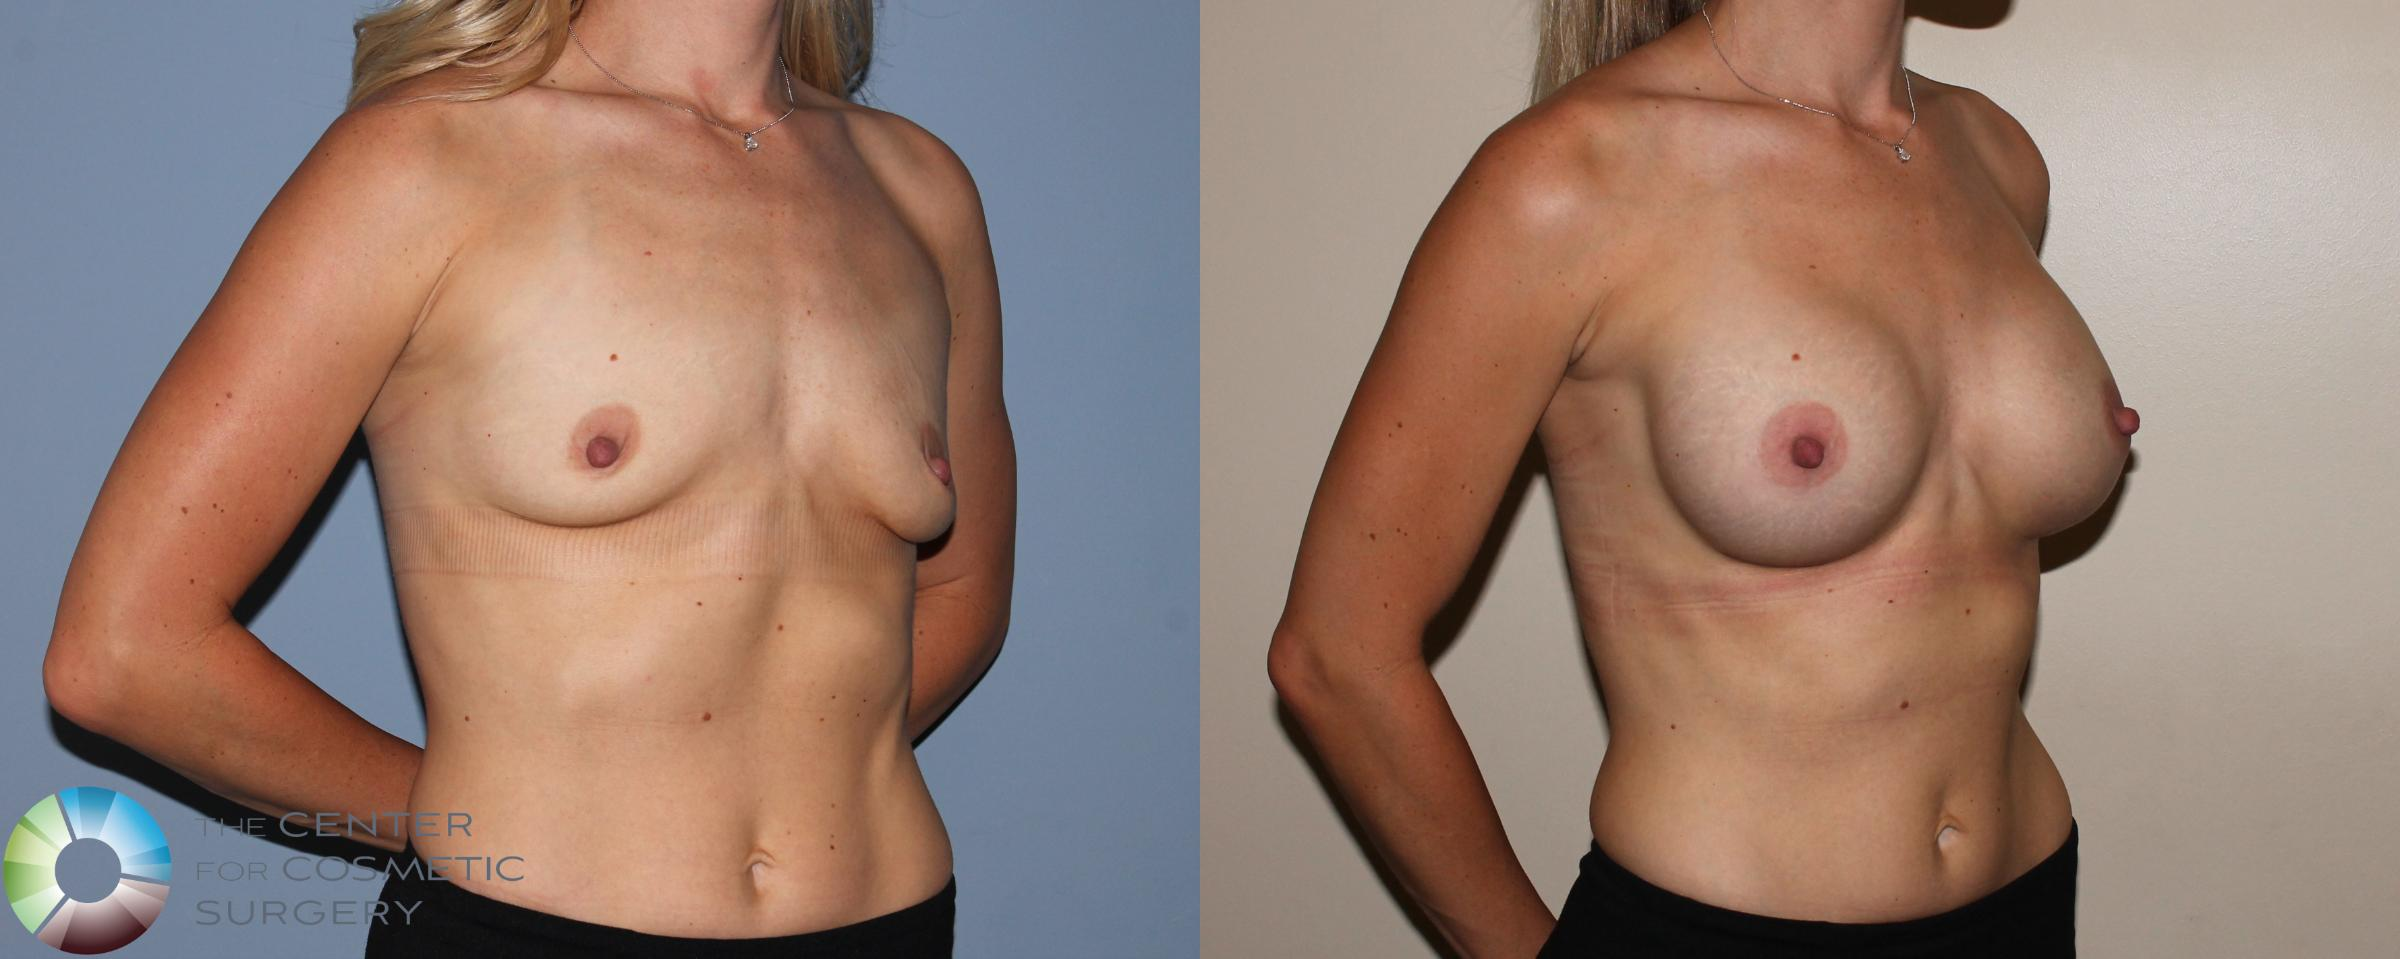 Breast Augmentation Case 742 Before & After View #2 | Golden, CO | The Center for Cosmetic Surgery